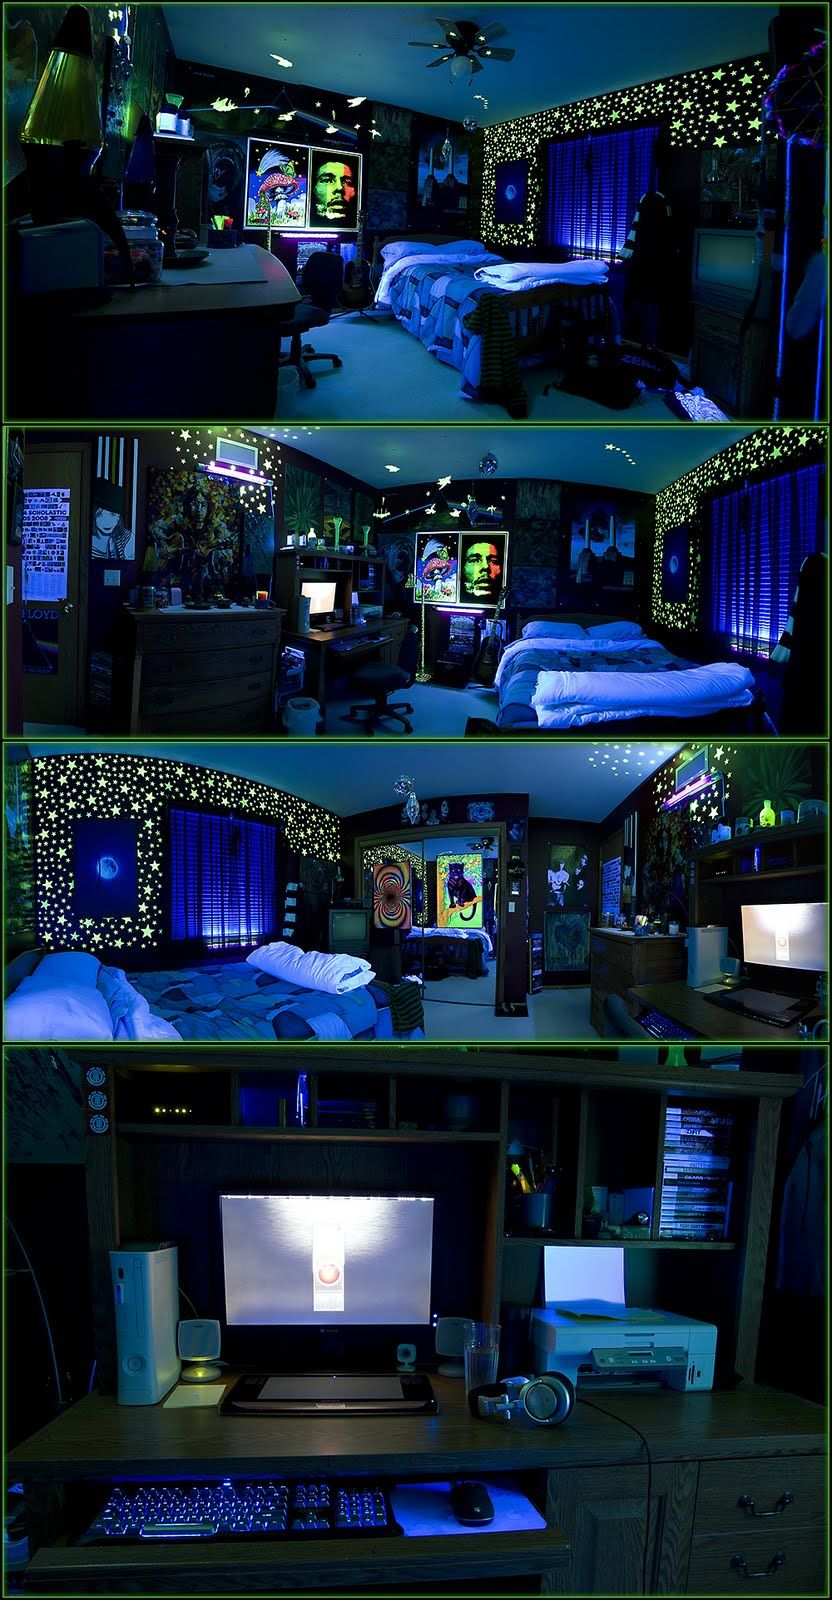 Awesome Great Atmosphere For Long Deep Relaxing Talks With Someone Too Surreal Cozy And Fun With Low Key Music With Images Chill Room Cool Rooms Black Light Room